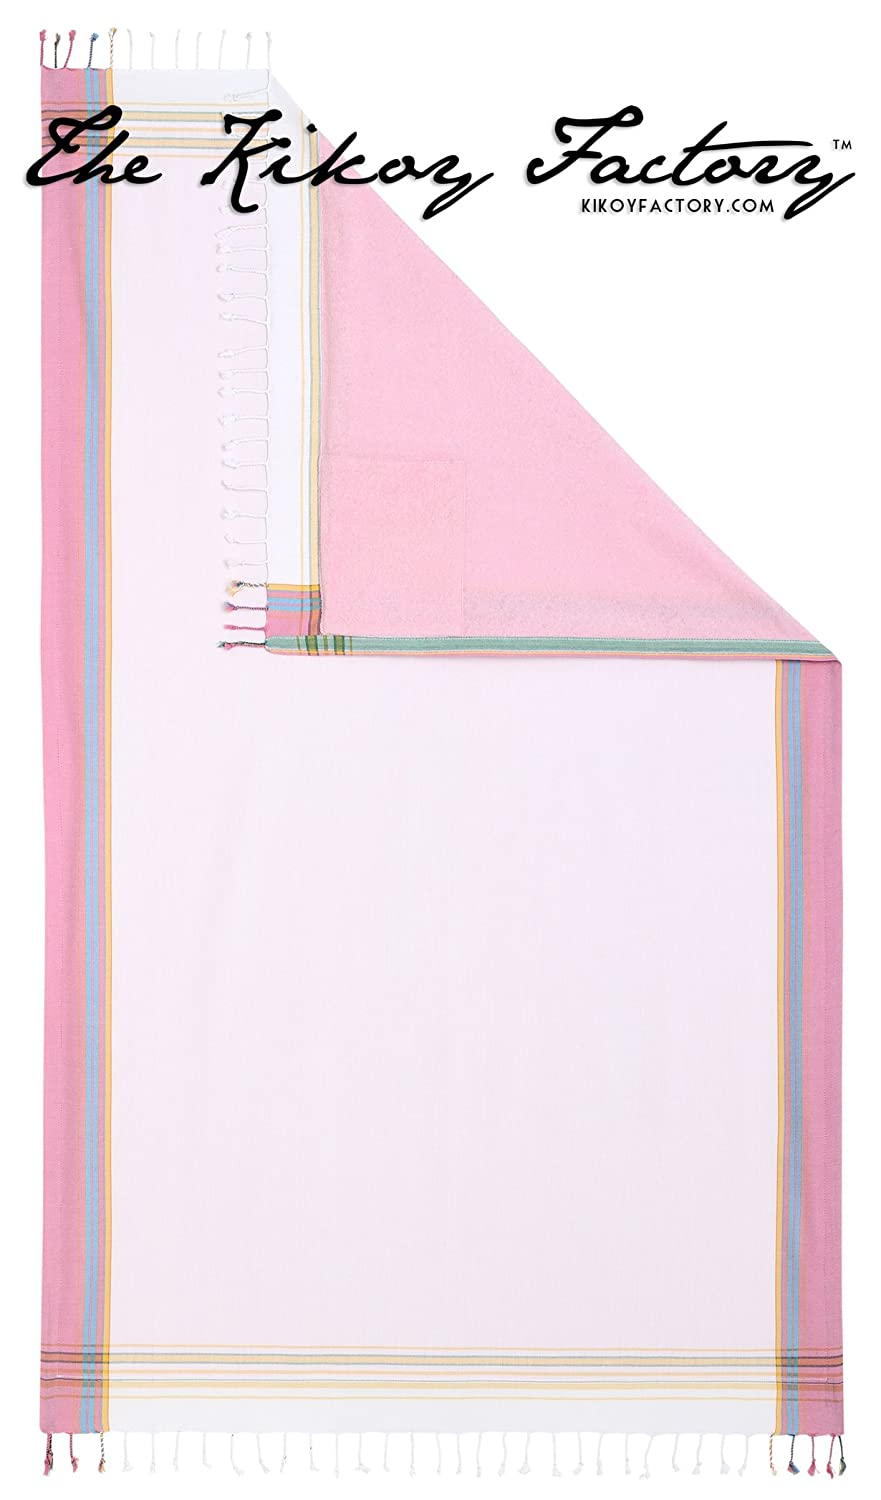 Kikoy Factory - Toalla de playa / Pareo - Toalla de baño - Kikoy Towel 13226S1 - Color : Rose White - Tamaño : 95 x 165 cms: Amazon.es: Hogar